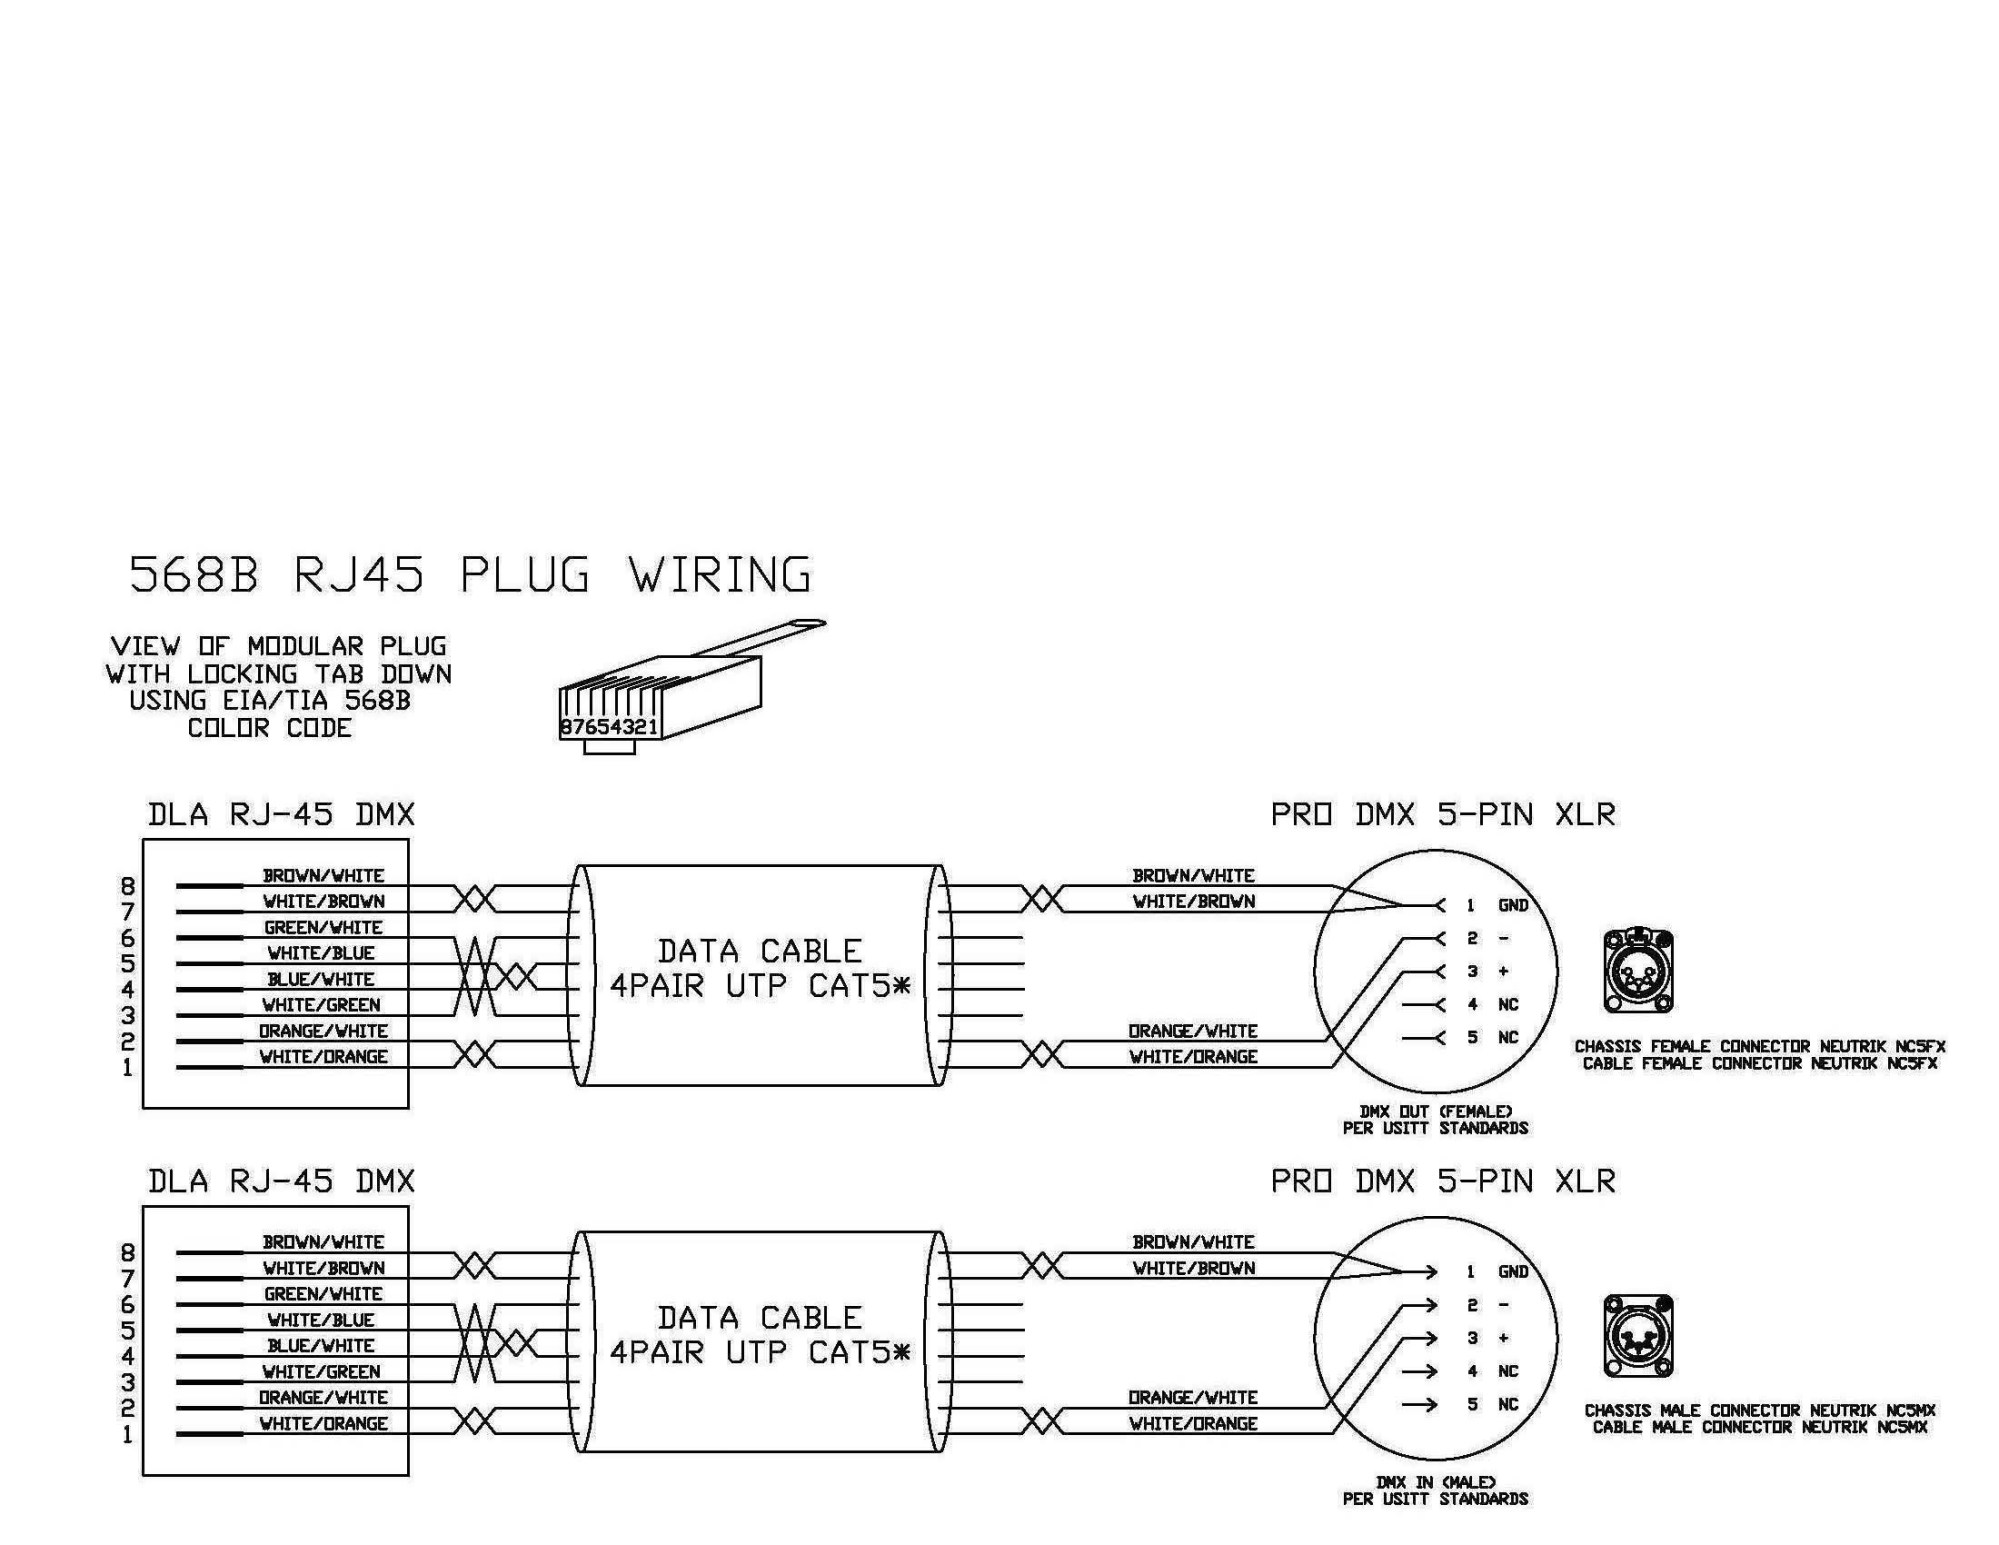 hight resolution of rca to rj45 wiring diagram collection wiring diagram for xlr connector inspirationa xlr to rj45 download wiring diagram